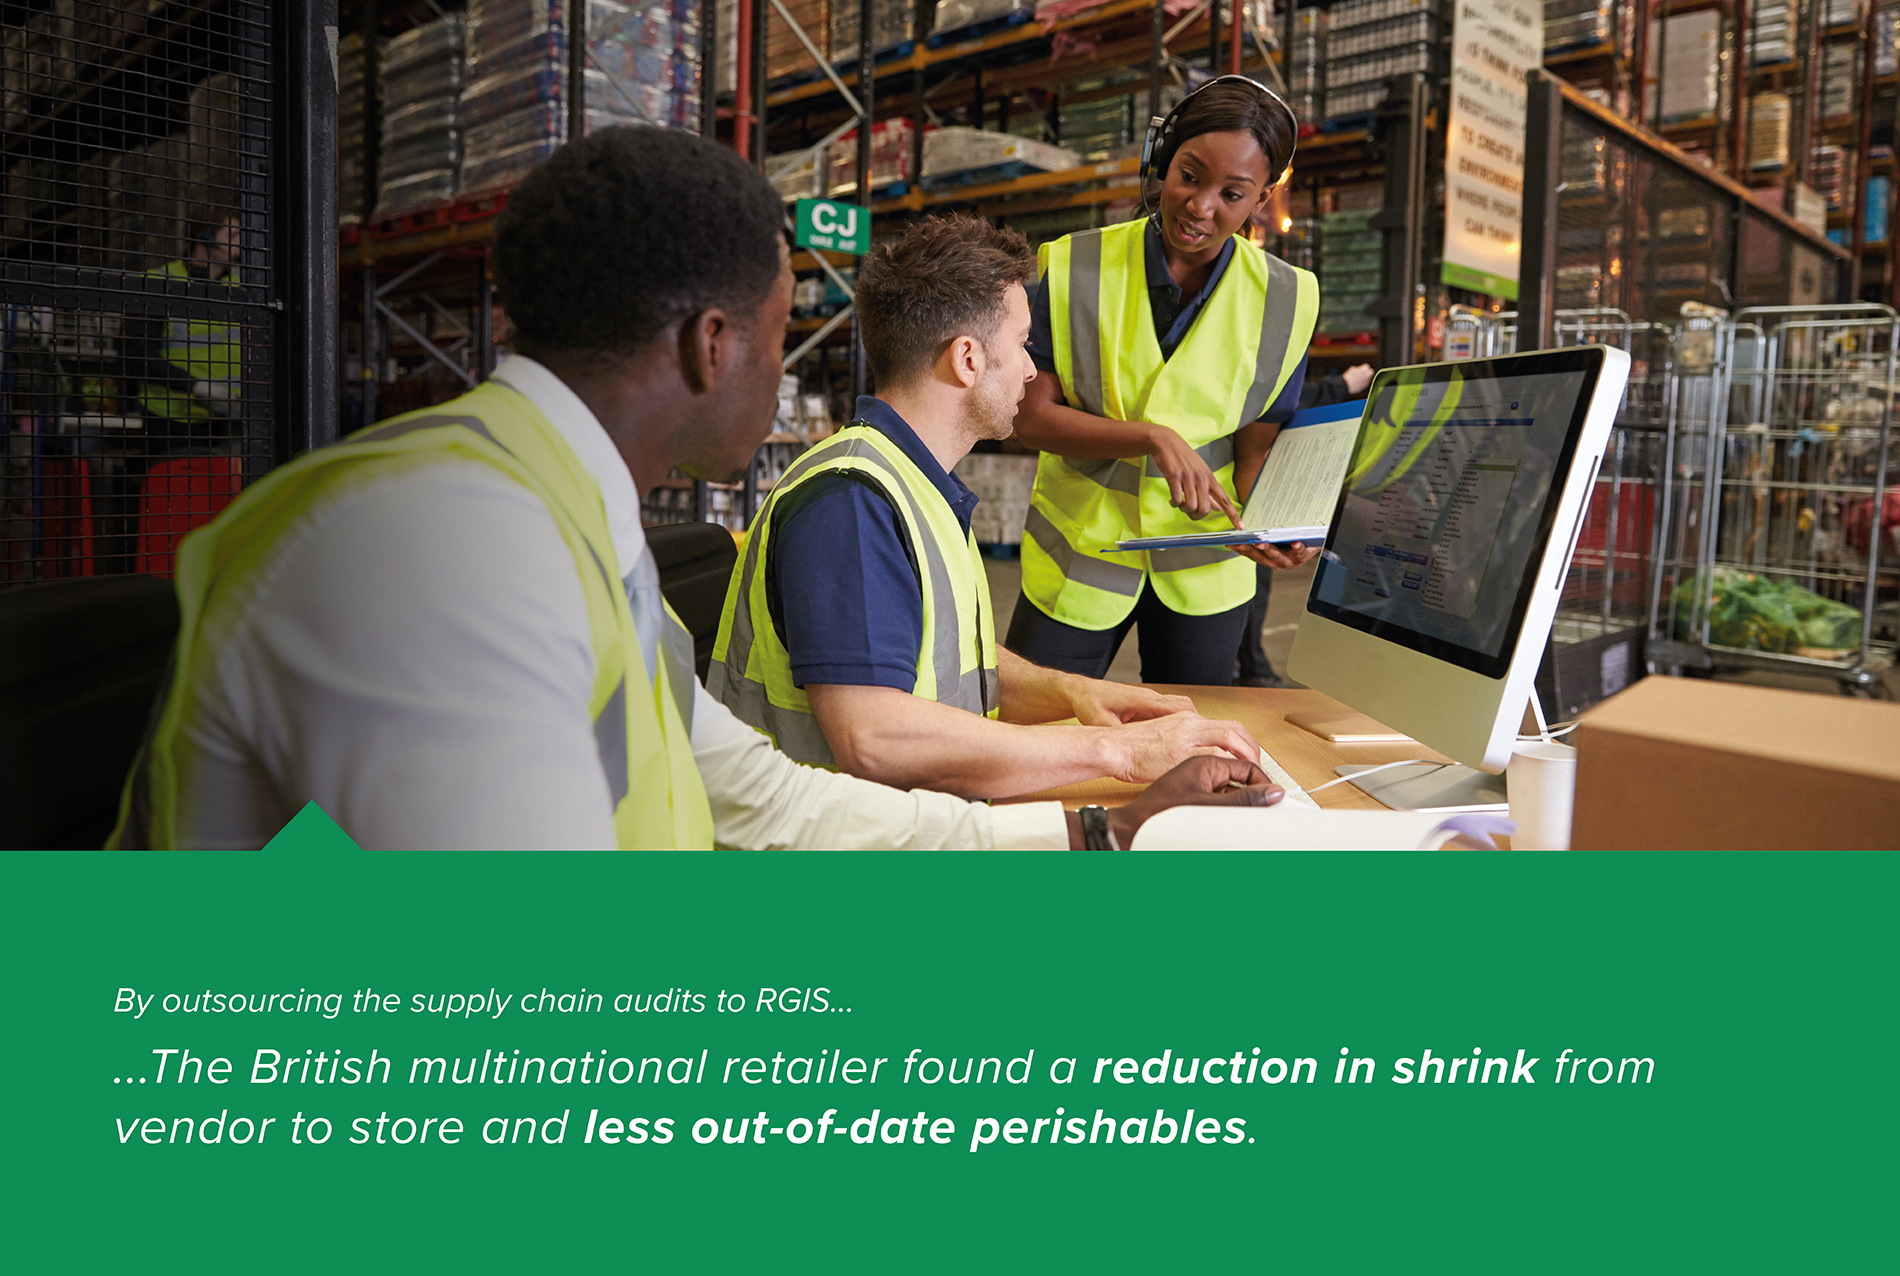 RGIS Perishable Items Supply Chain Audit Case Study